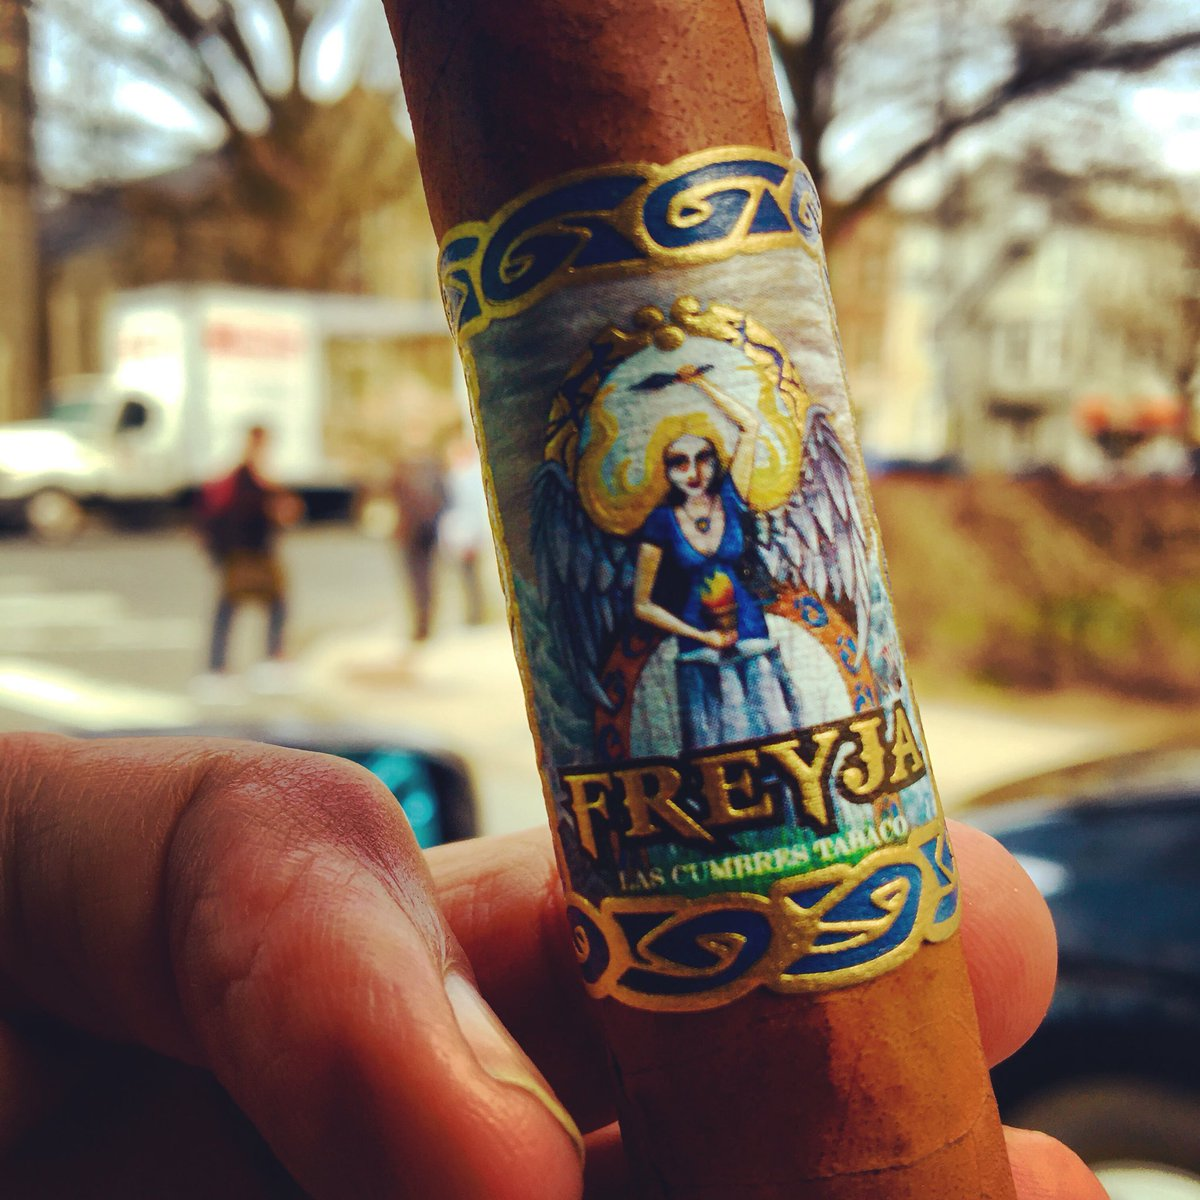 Celebrating the creator of Freyja @emmasenorial Birthday enjoying one on a beautiful day